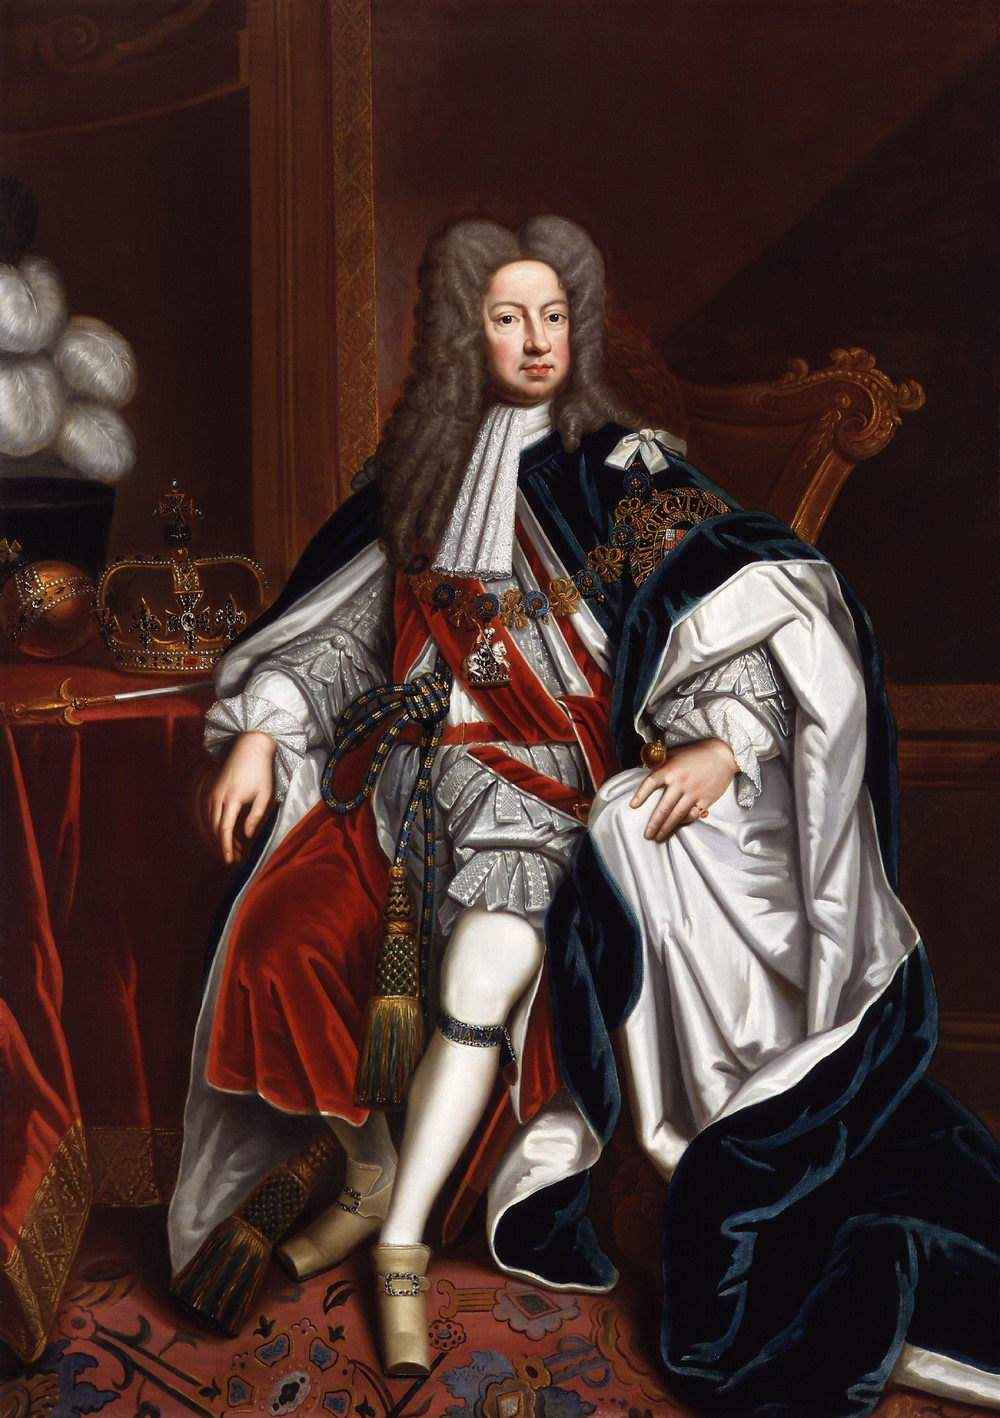 King George I by Sir Godfrey Kneller. The first king of Great Britain of the House of Hanover